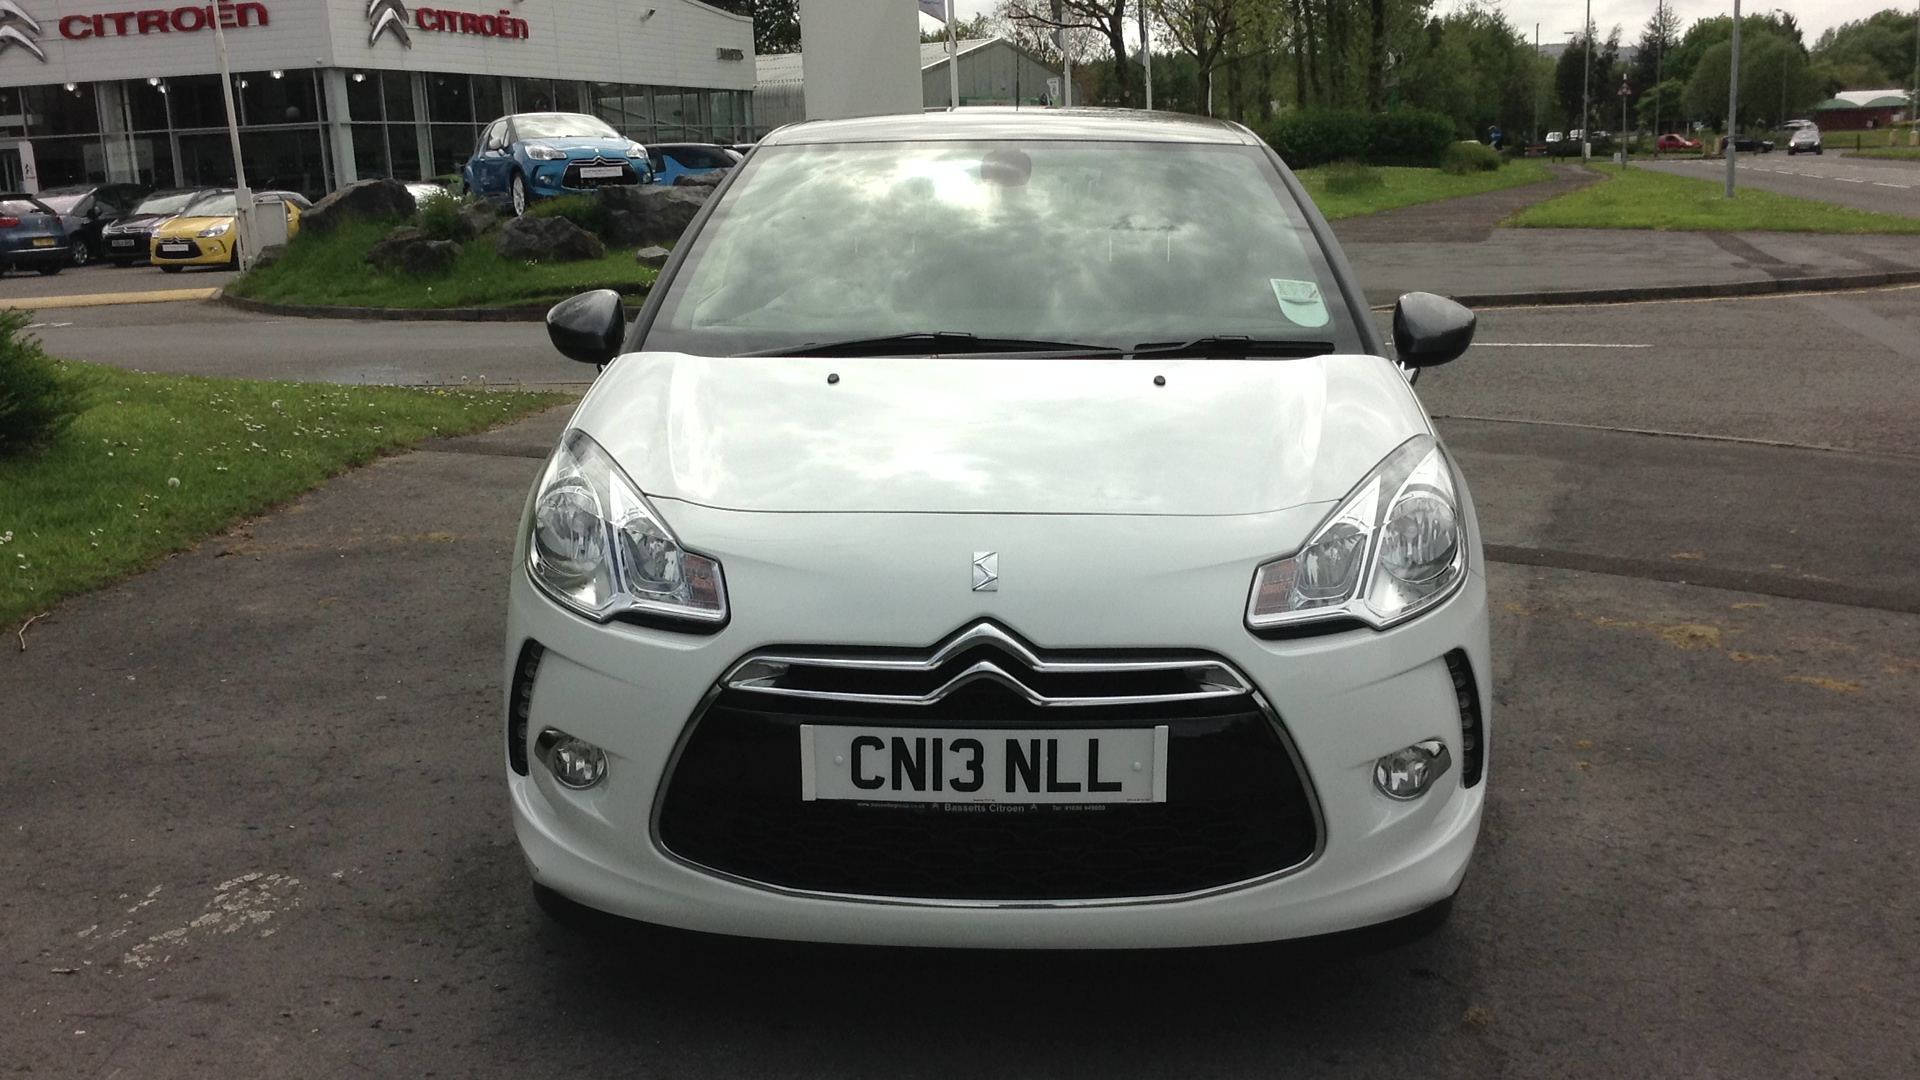 Used Citroen Ds3 Cars Free Download Image